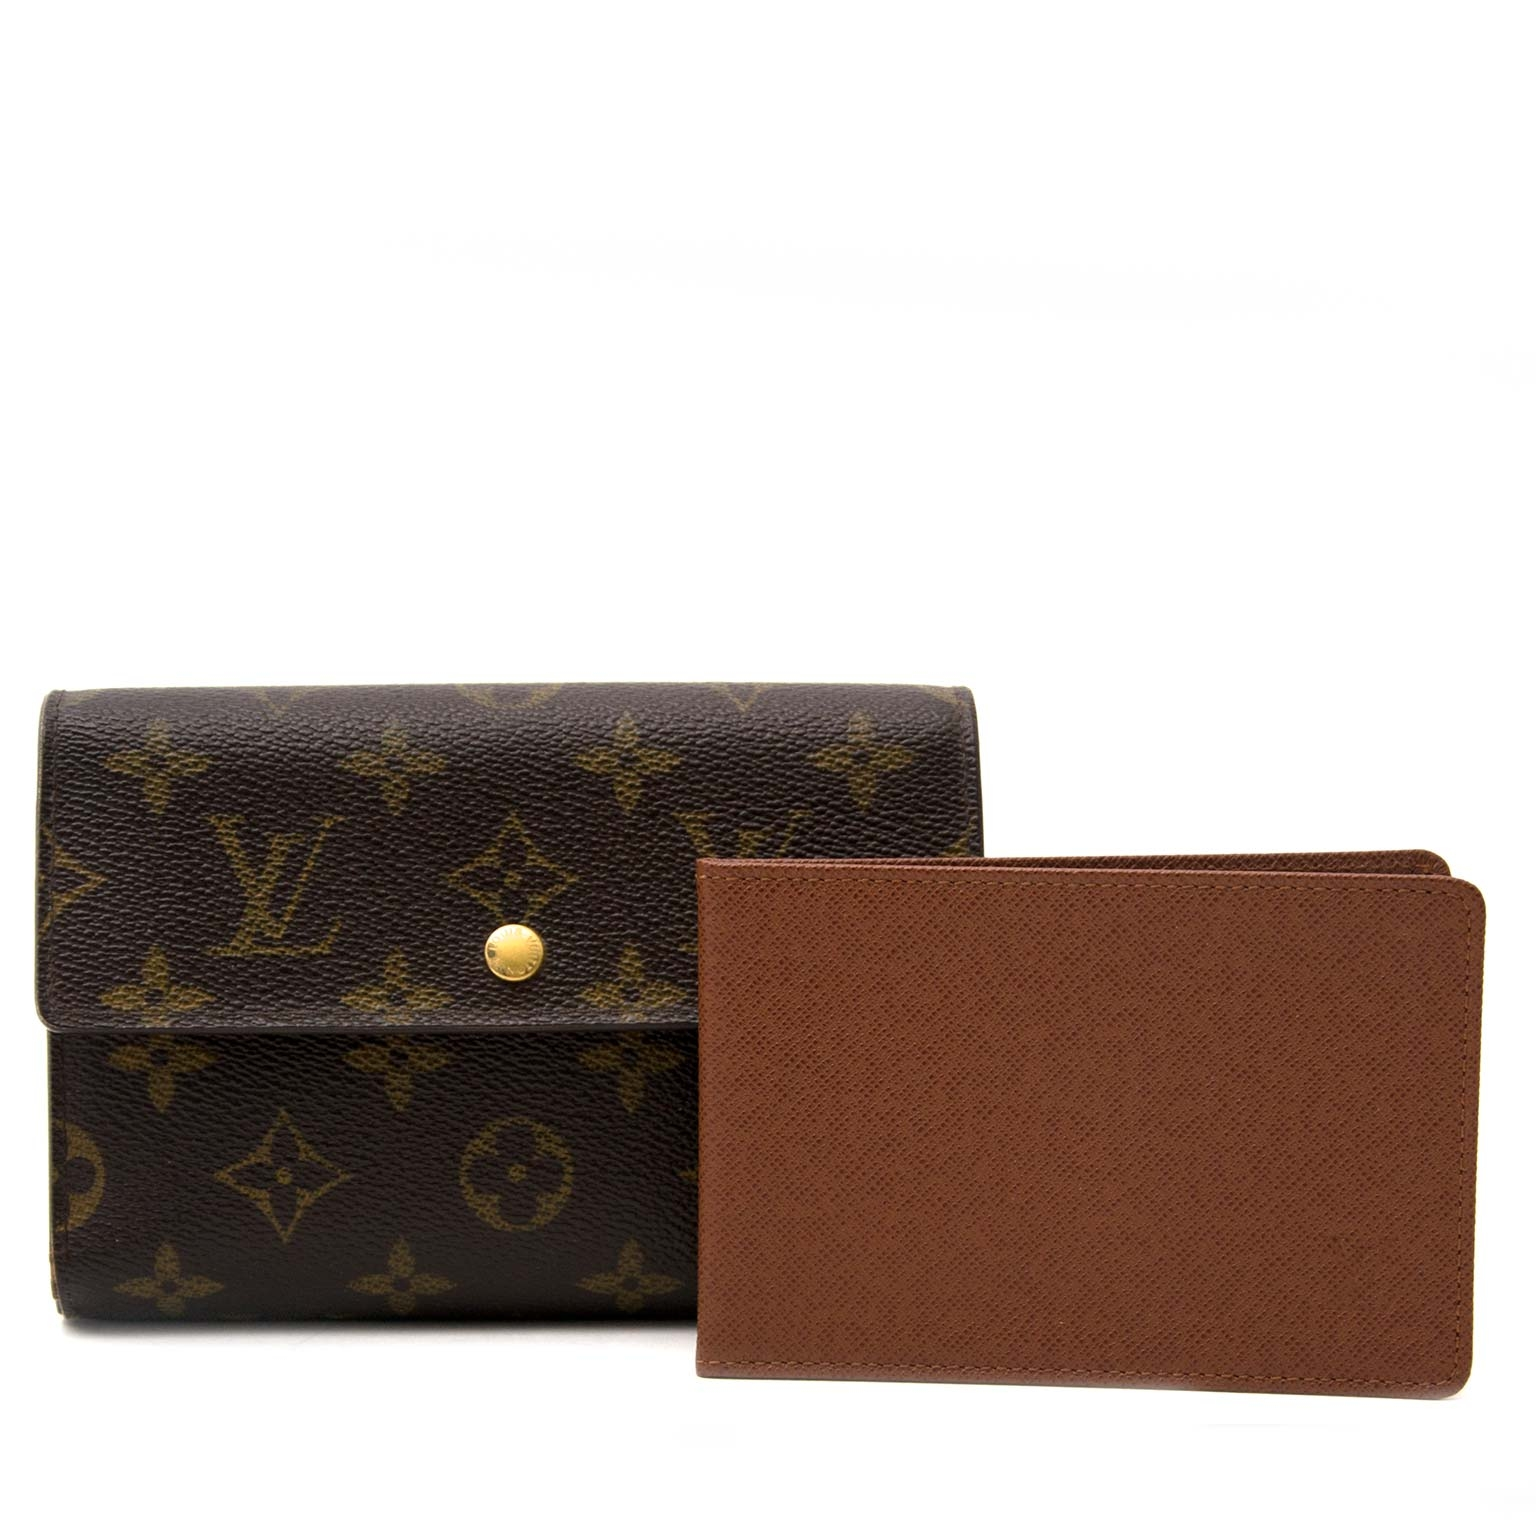 100% authentic Louis Vuitton Alexandra Monogram Wallet now online at labellov.com for the best price